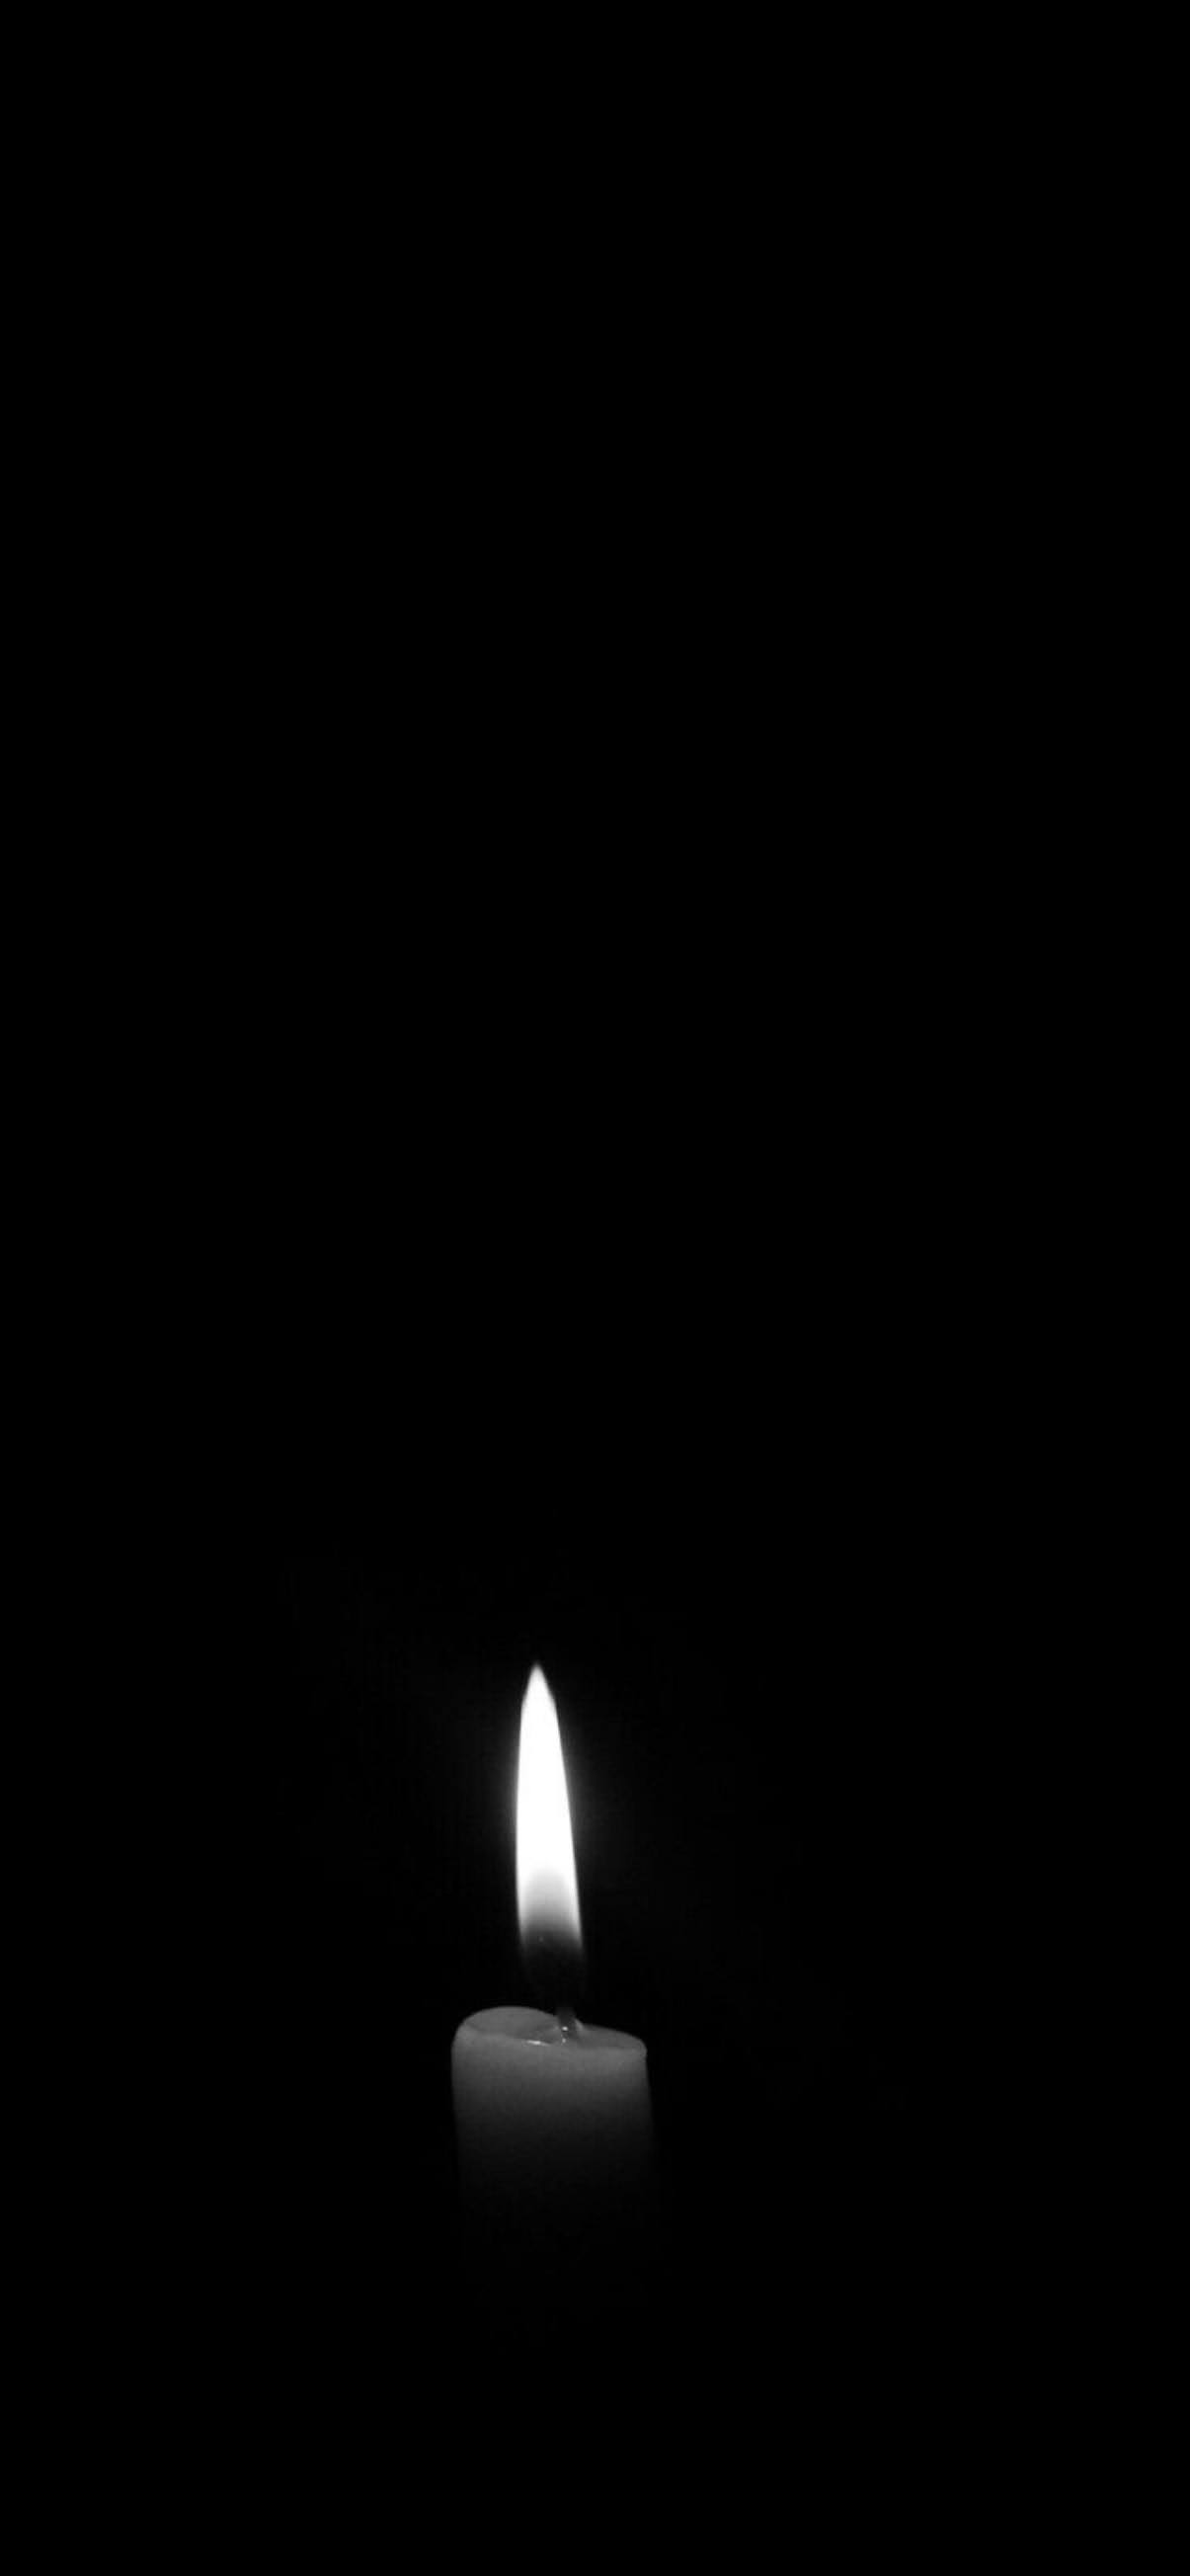 Plain Black wallpaper for mobile with candle